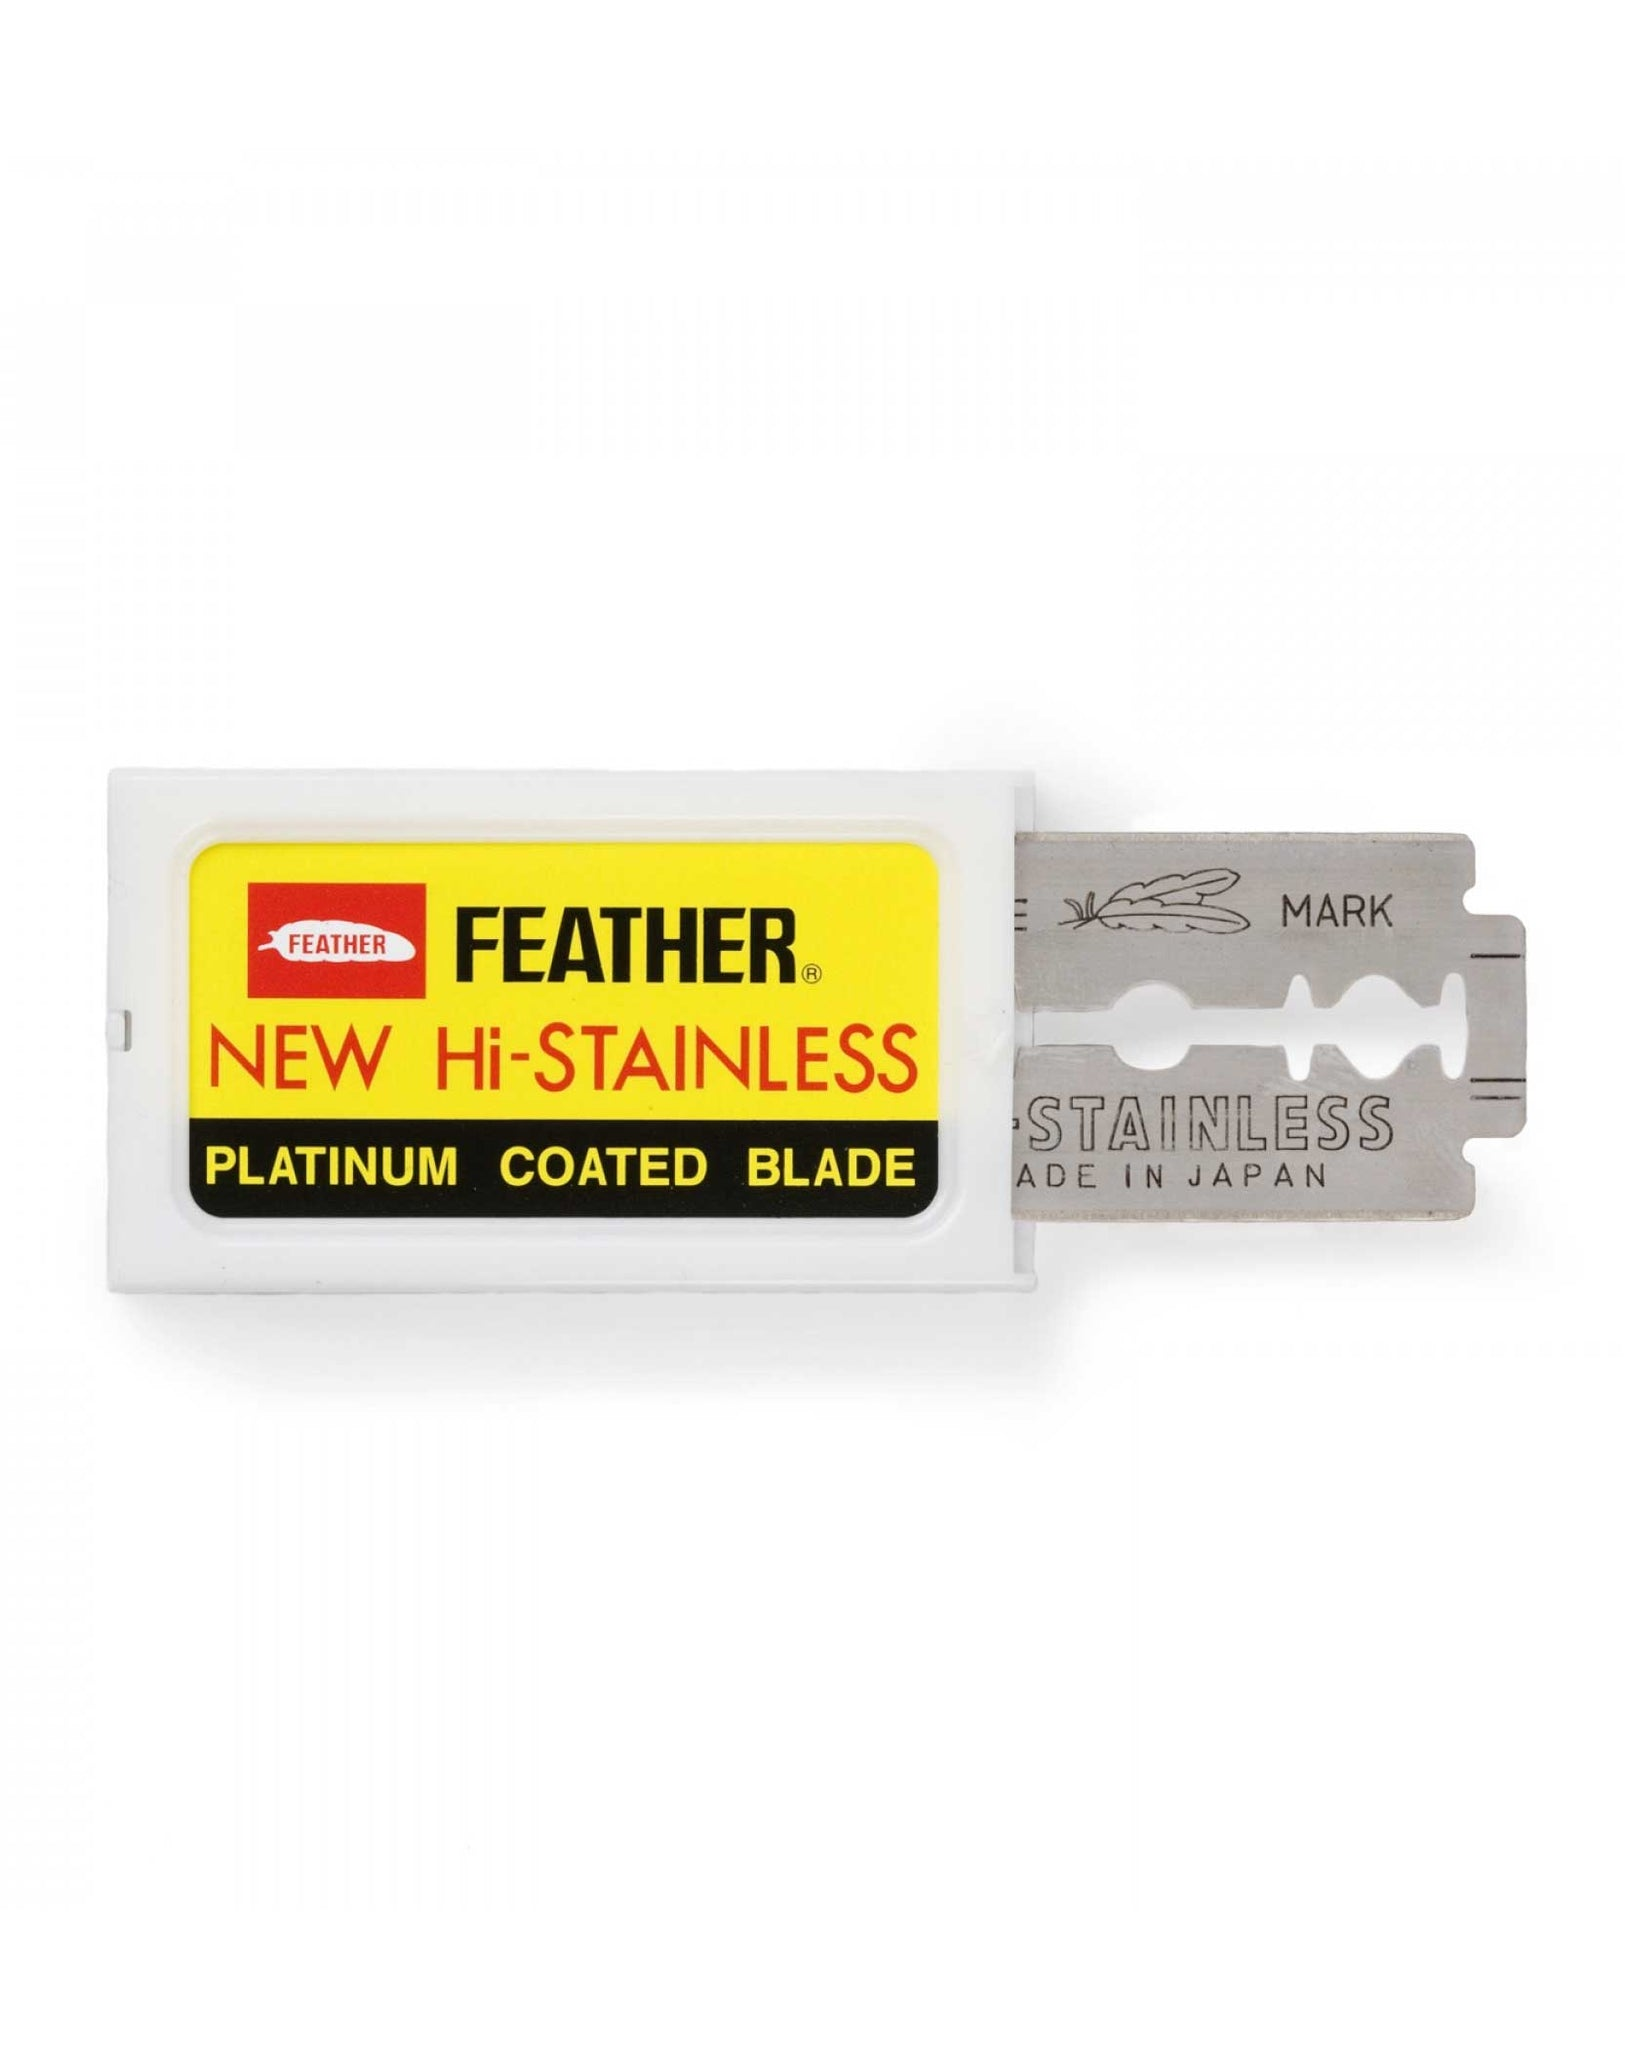 Feather Double Edge Razor Blades (10 ct)